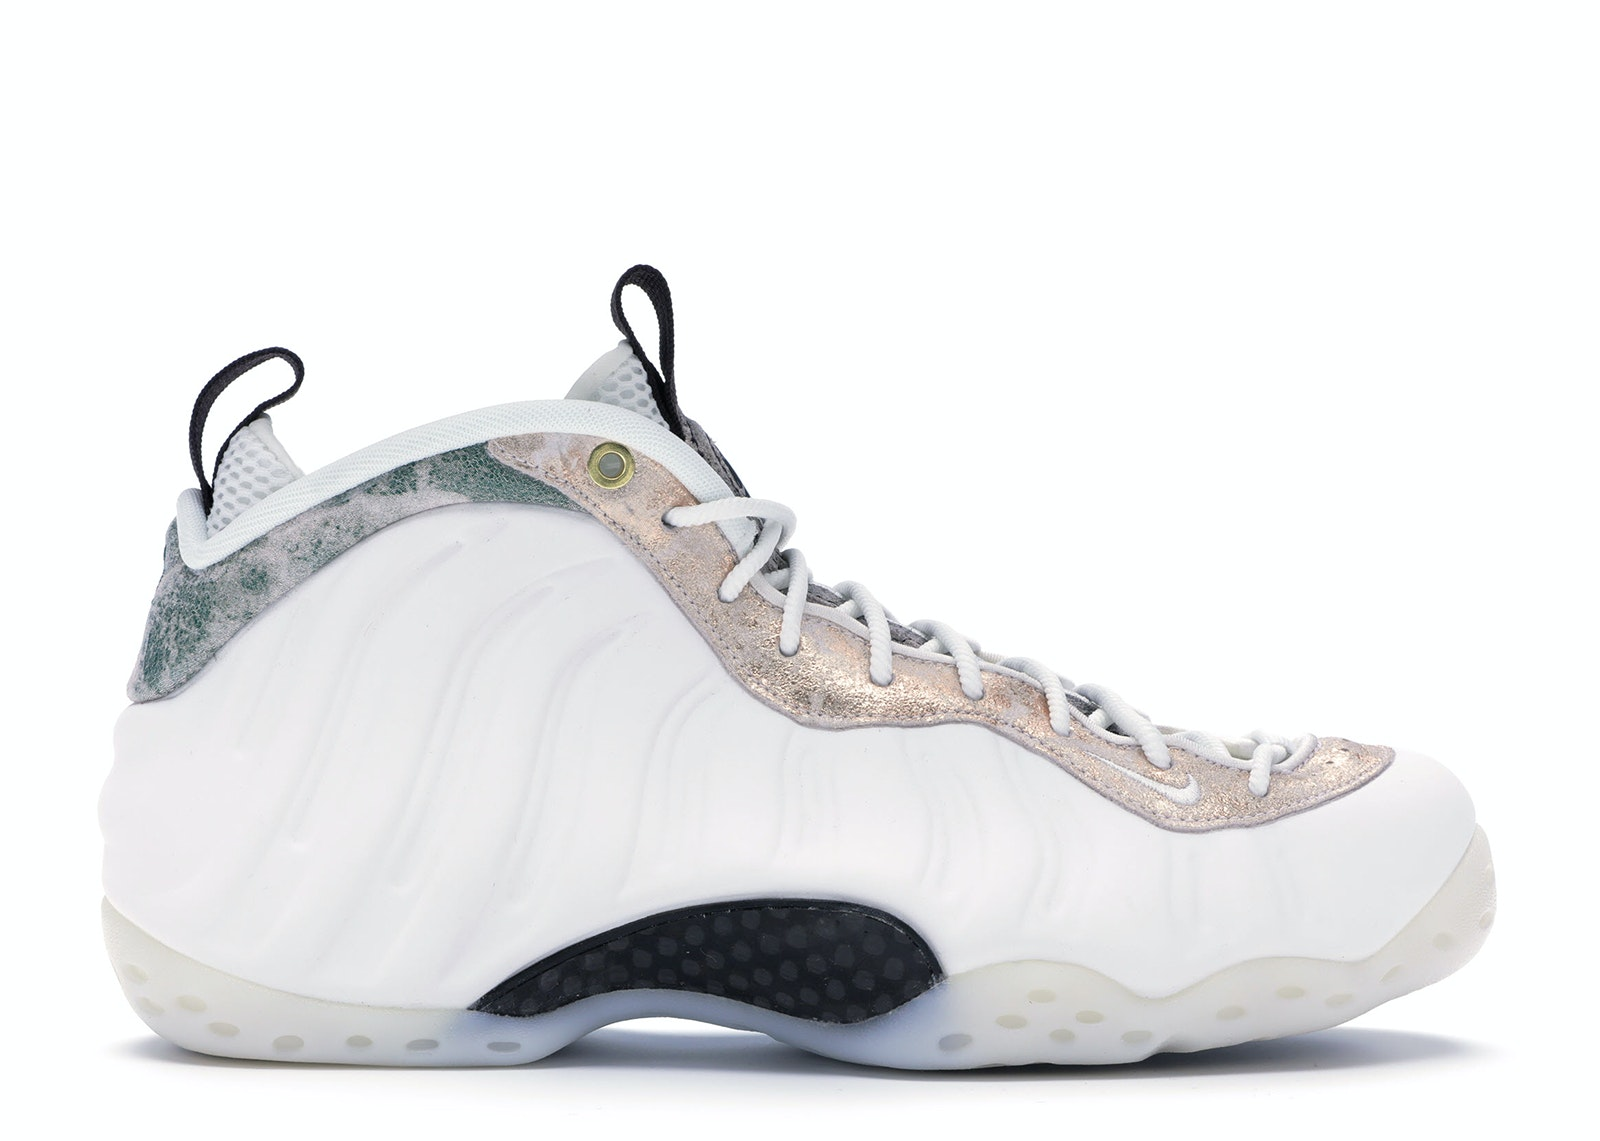 Nike Air Foamposite One AbaloneTag SneakerNews ...EBC